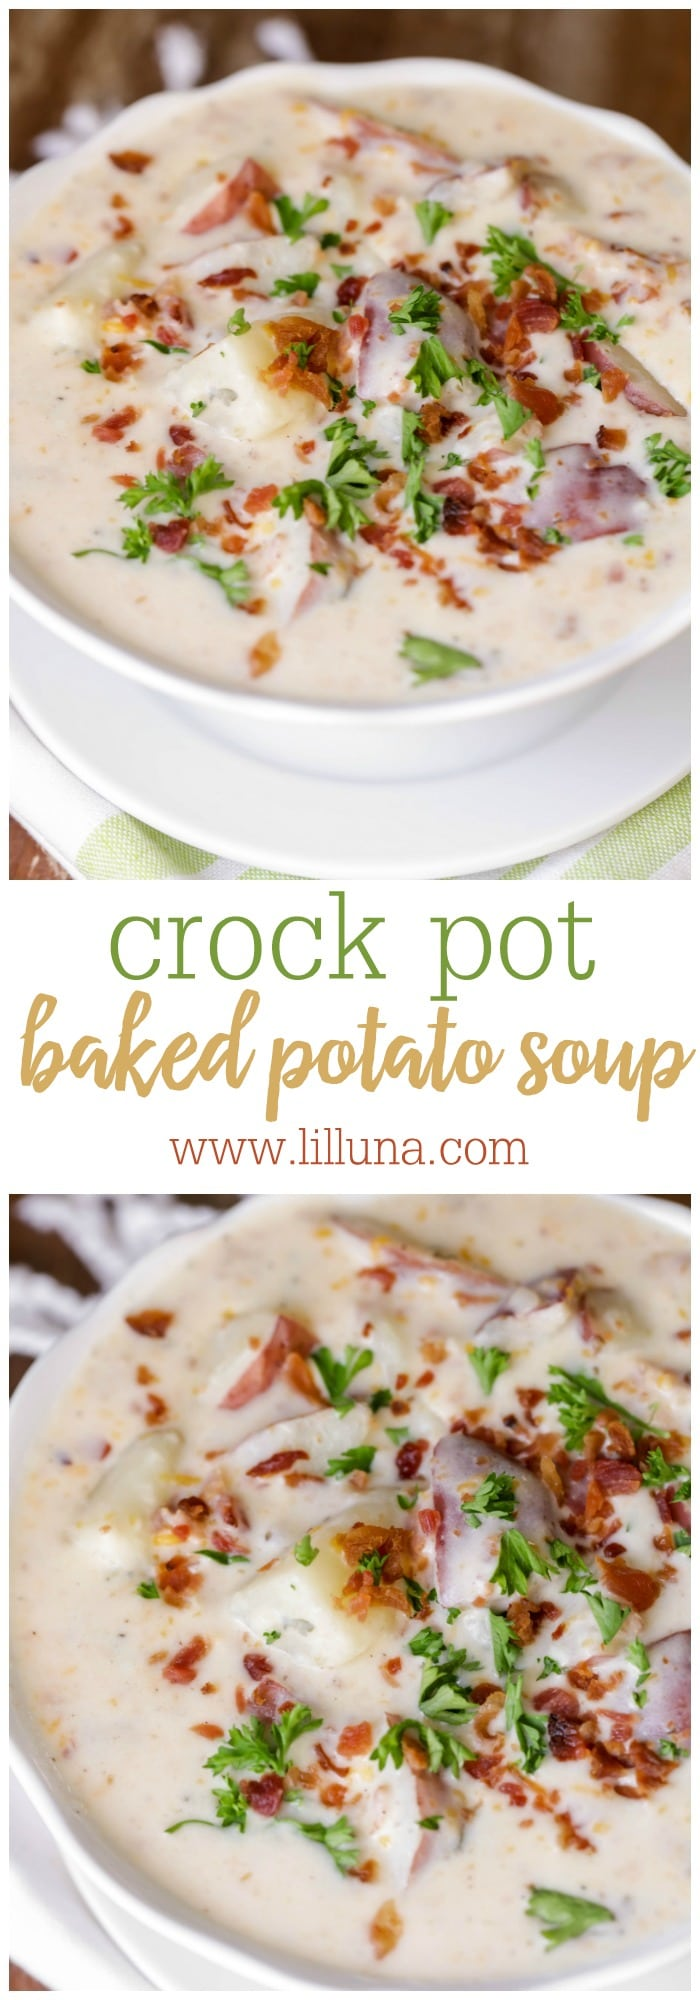 Creamy and delicious Crock Pot Baked Potato Soup - so full of flavor and easy too (my kind of recipe!!) { lilluna.com }